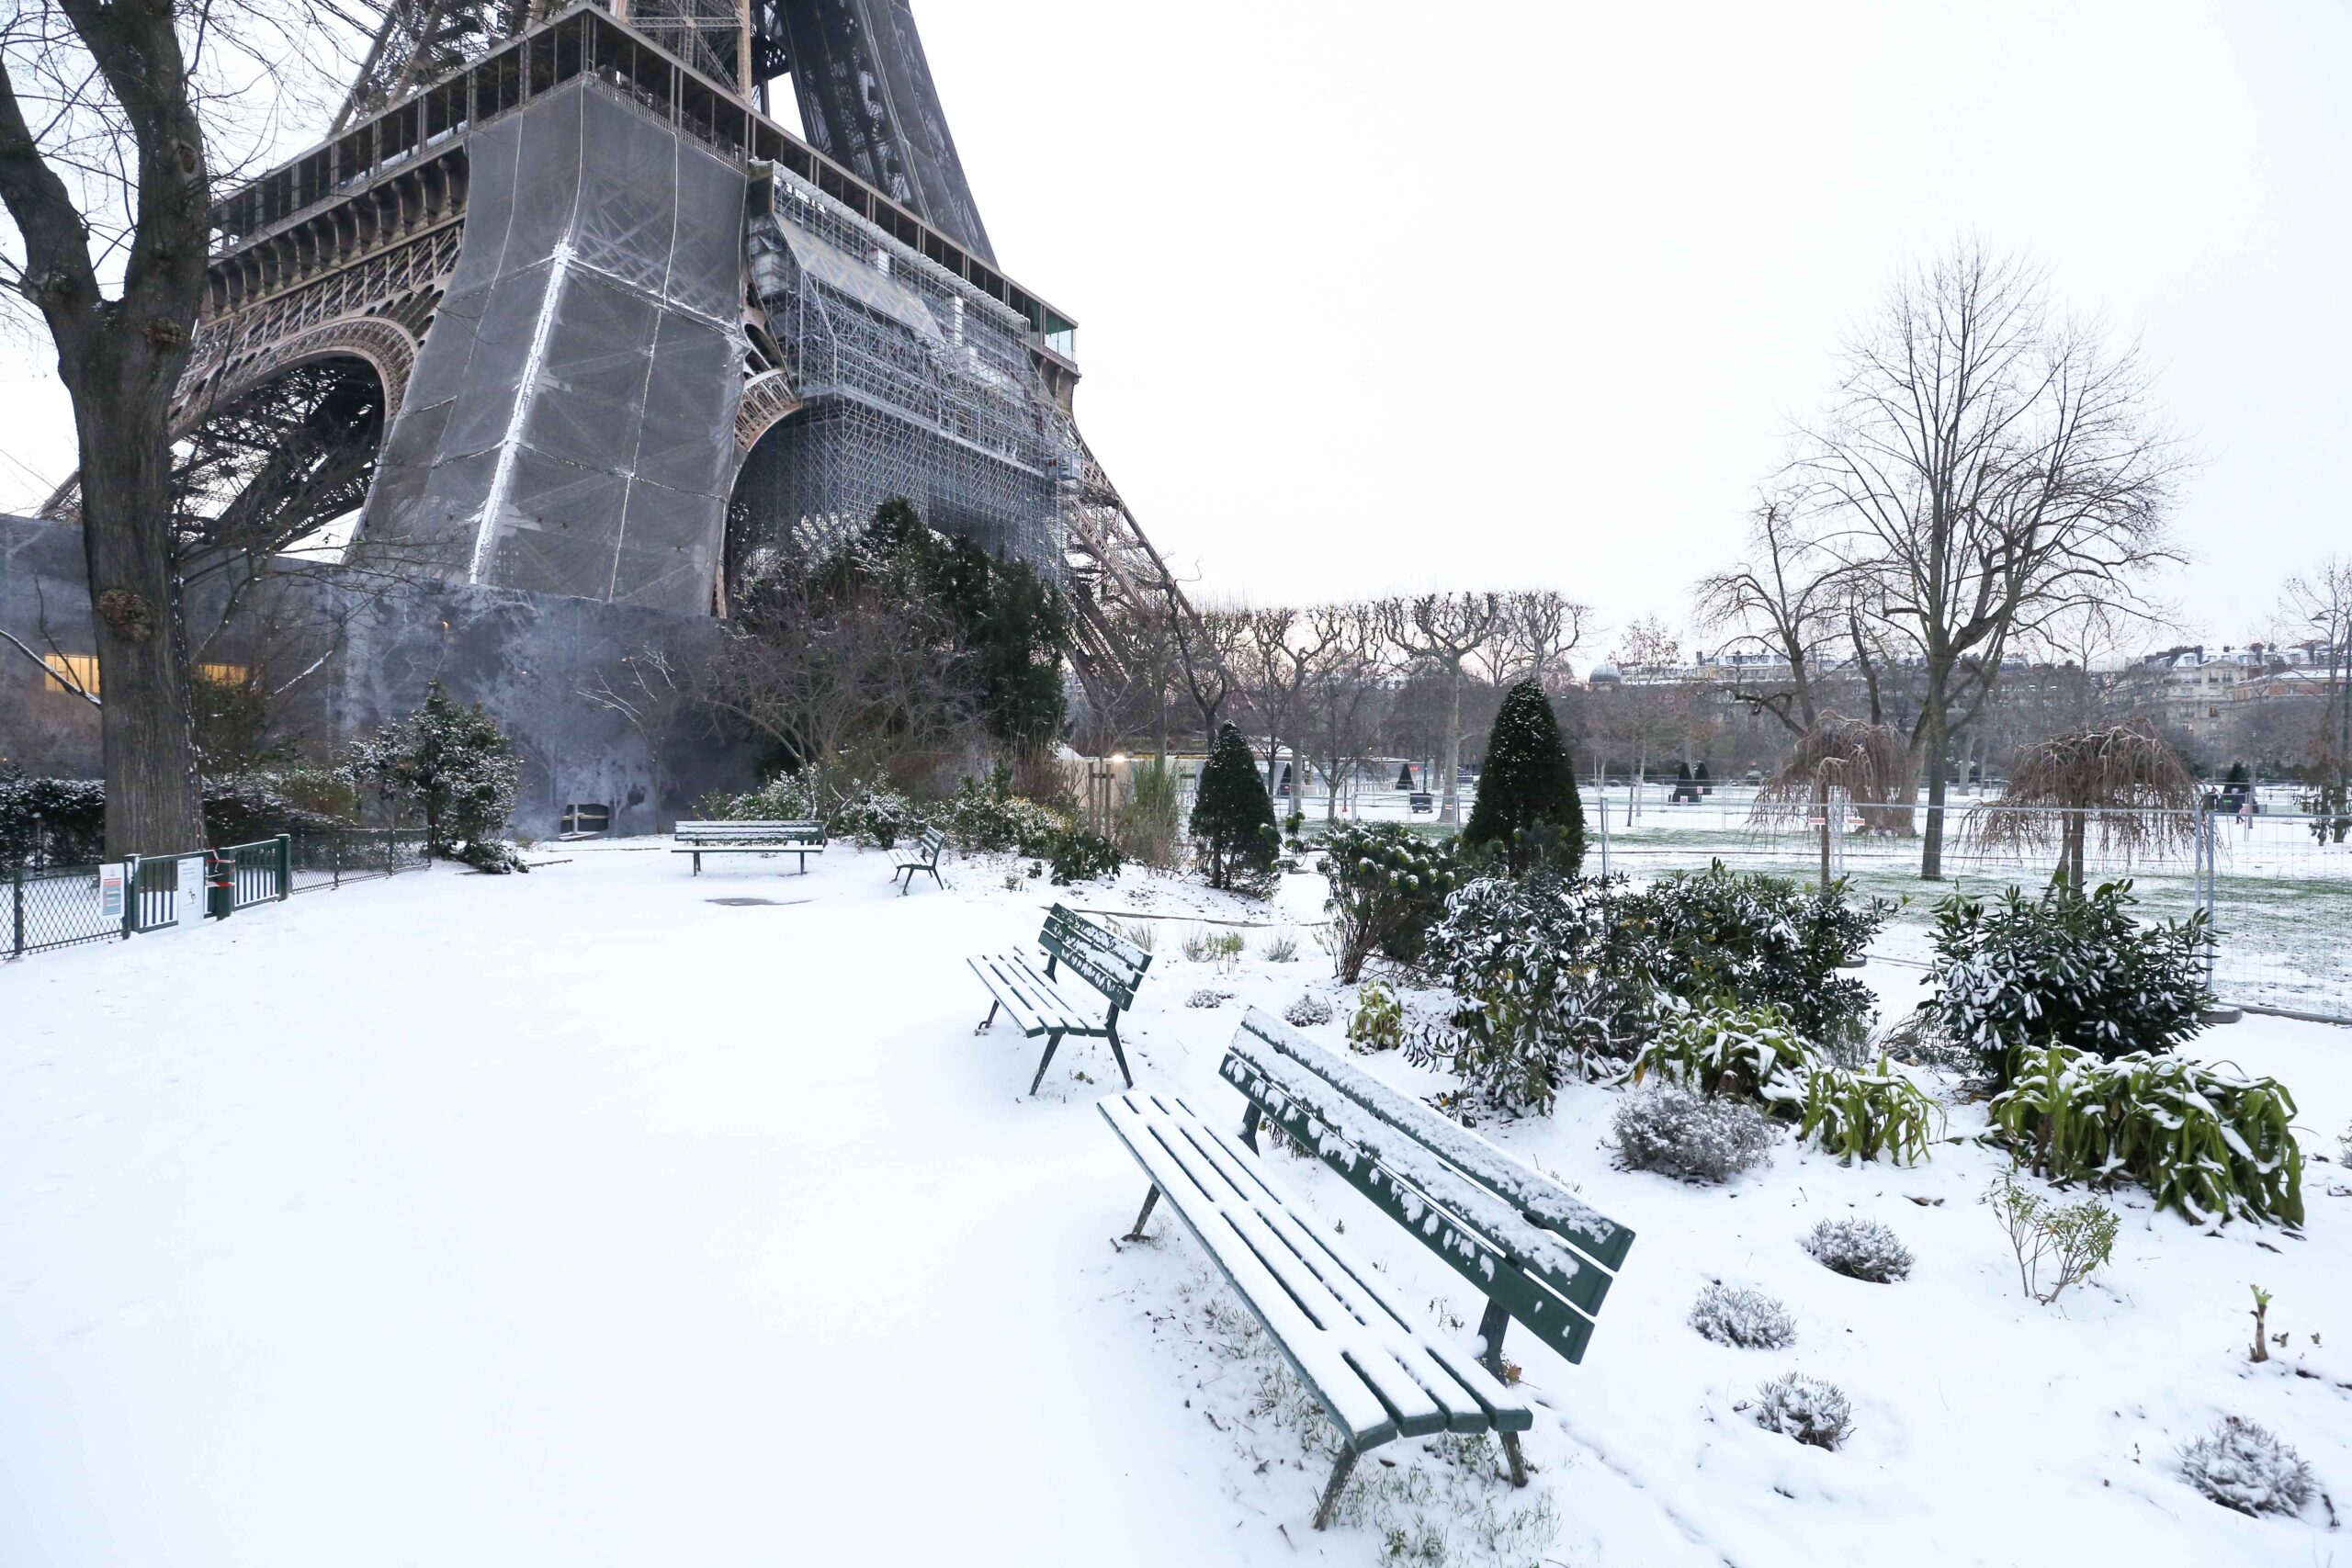 Gardens beneath the Eiffel Tower, in Paris, are covered in snow on February 10, 2021, following an overnight snowfall. In parts of the Paris region authorities cancelled school buses and urged parents to keep children at home. The city of Paris has opened